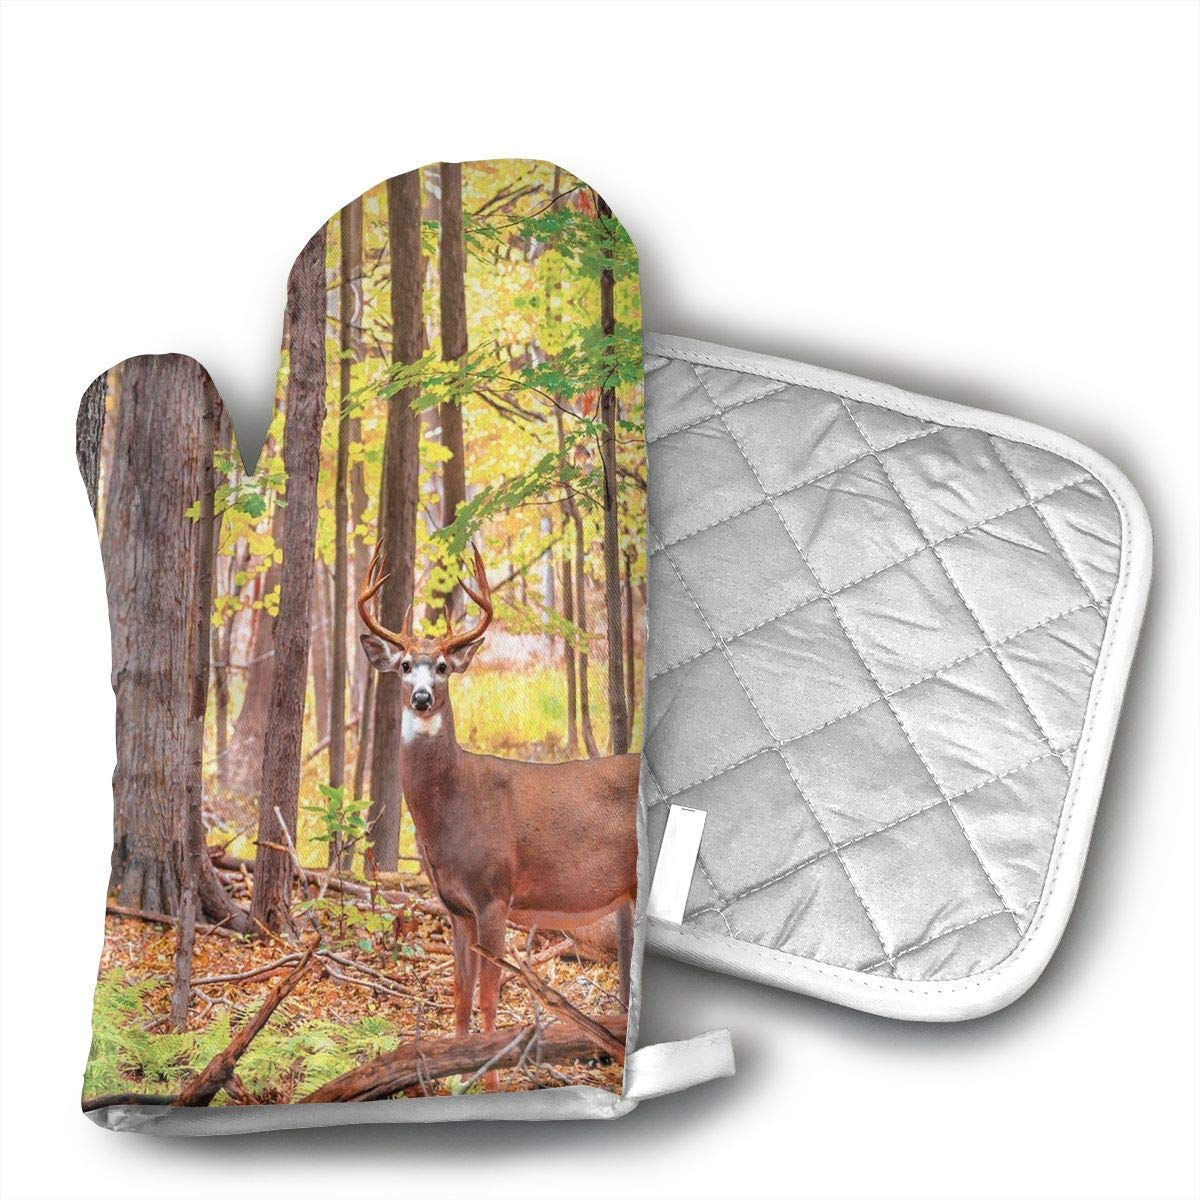 Deer Shower Curtain Whitetail Antlers Natural Forest Oven Mitts and Pot Holders Set with Polyester Cotton Non-Slip Grip, Heat Resistant, Oven Gloves for BBQ Cooking Baking, Grilling